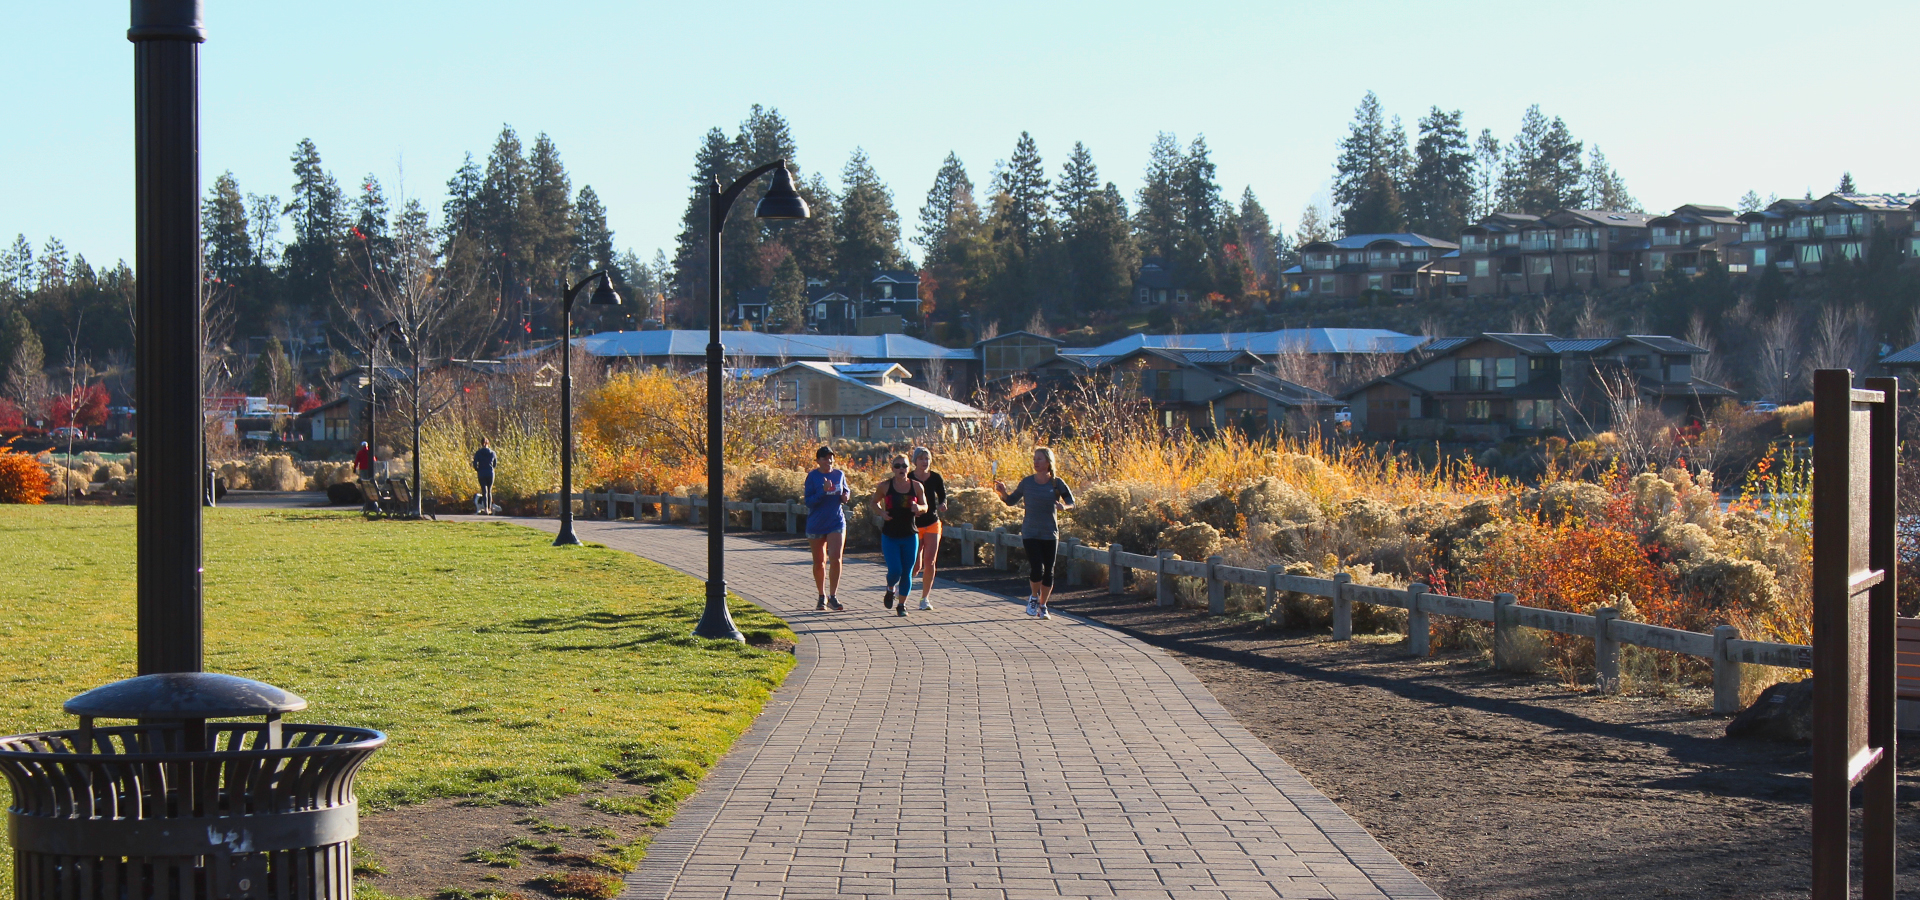 Image of the Deschutes River Trail running through Riverbend Park.